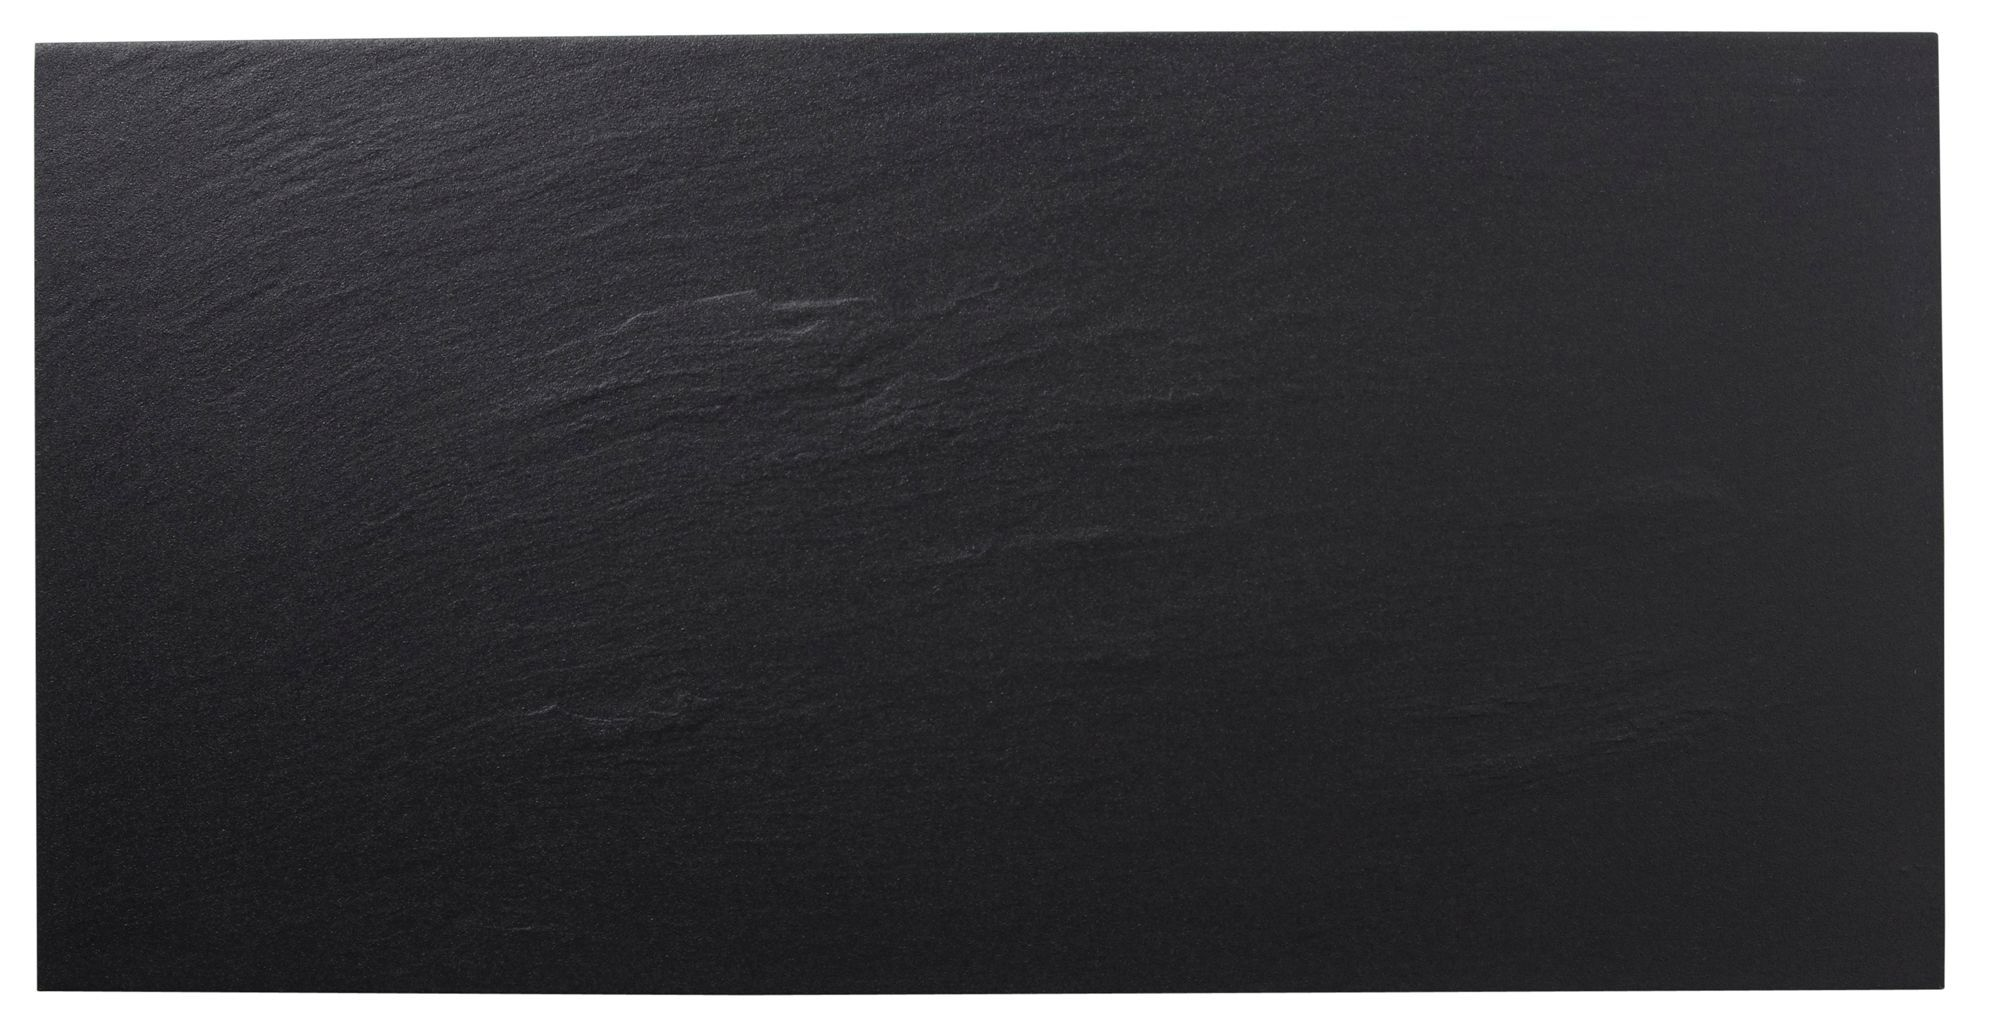 Slate Effect Black Stone Effect Porcelain Wall Floor